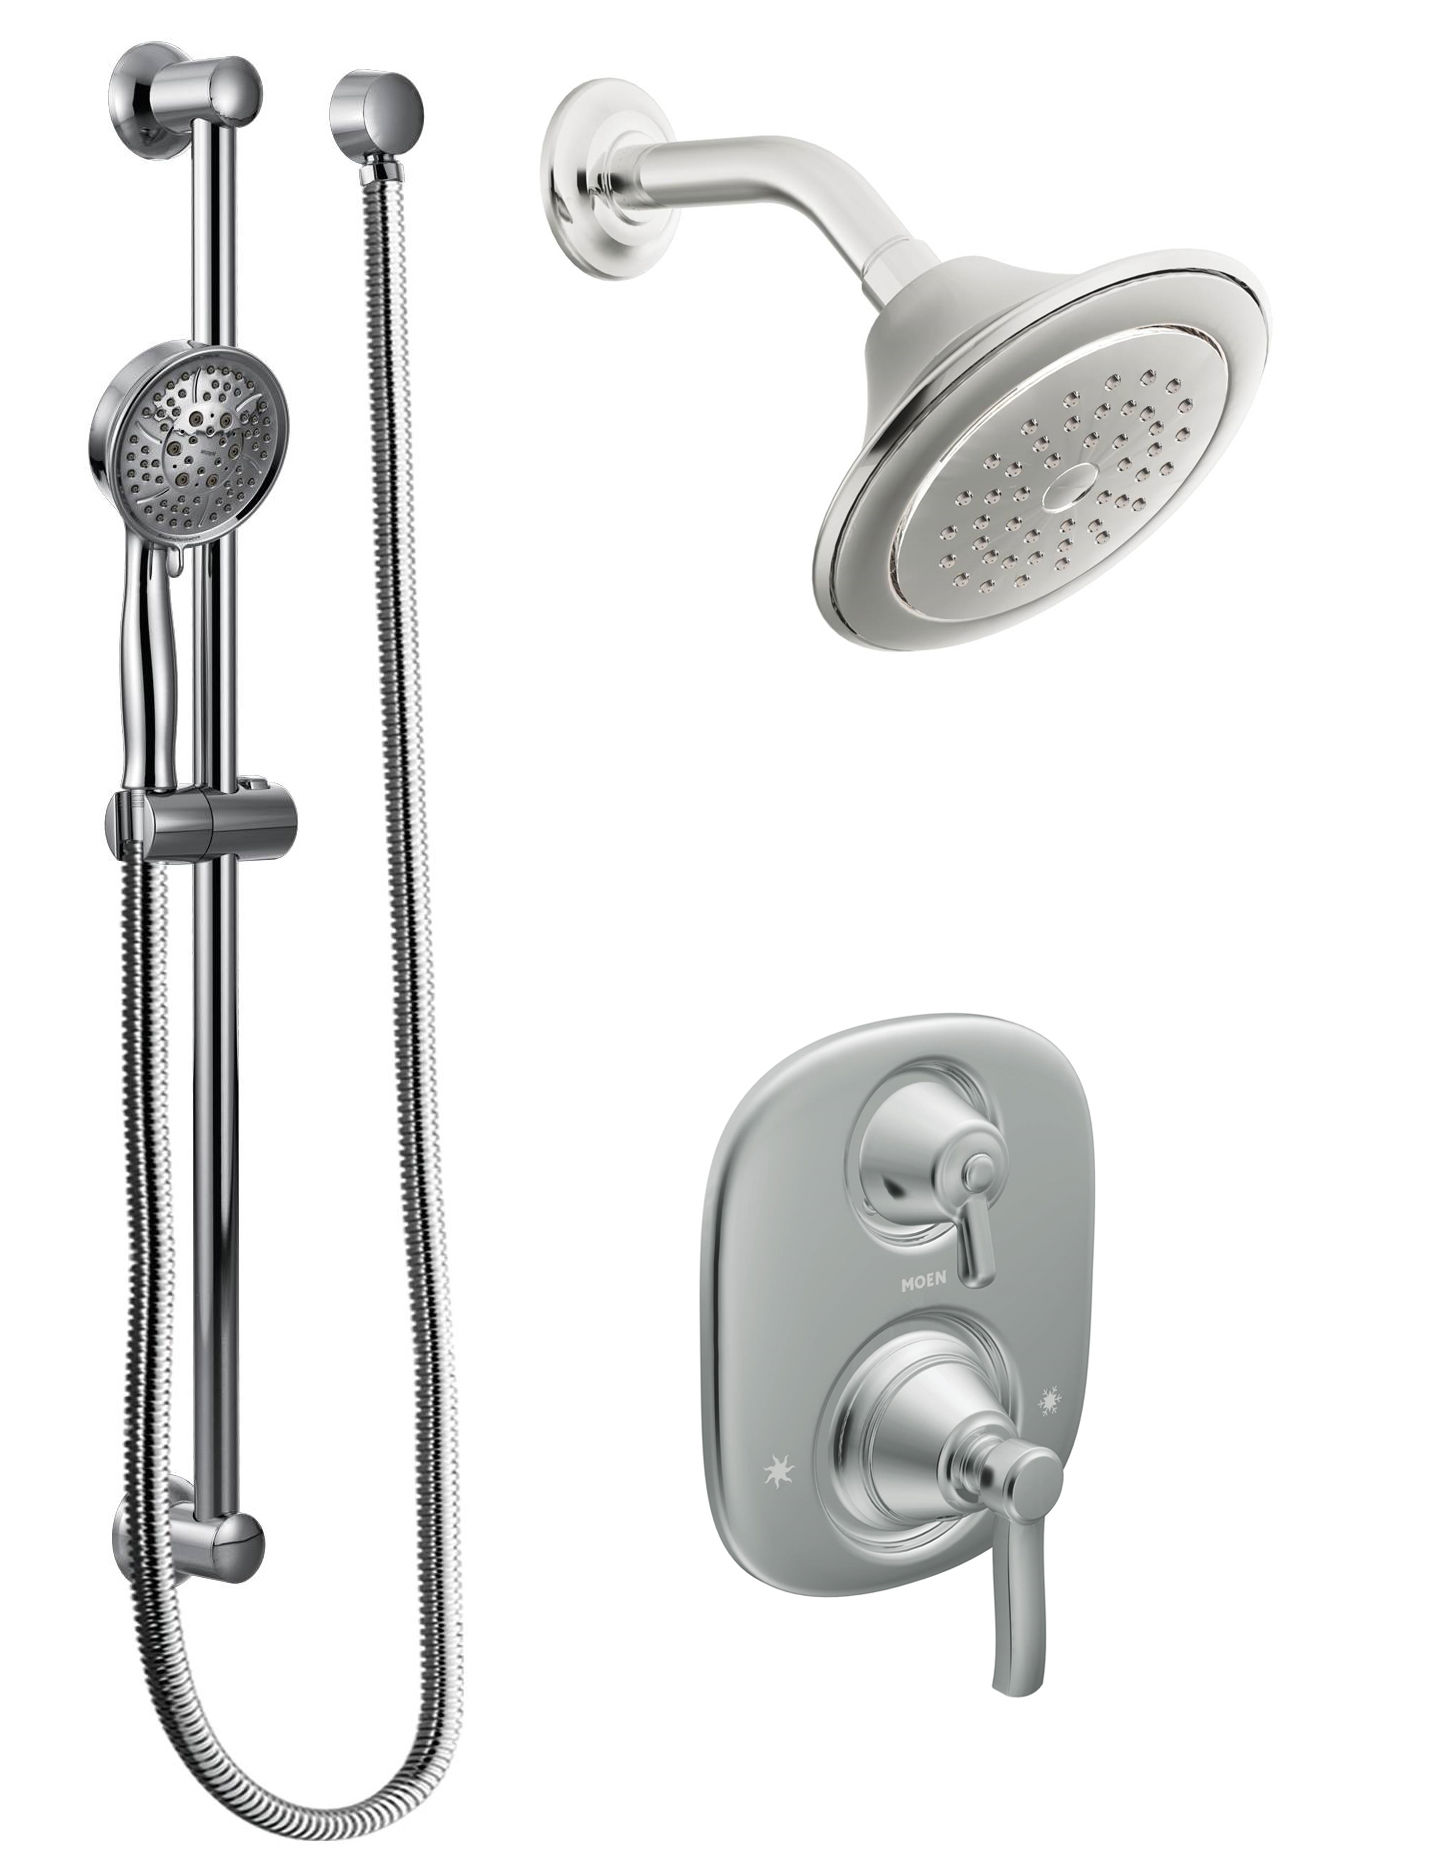 Moen 603SEP Chrome Pressure Balanced Shower System with 2 GPM Shower ...